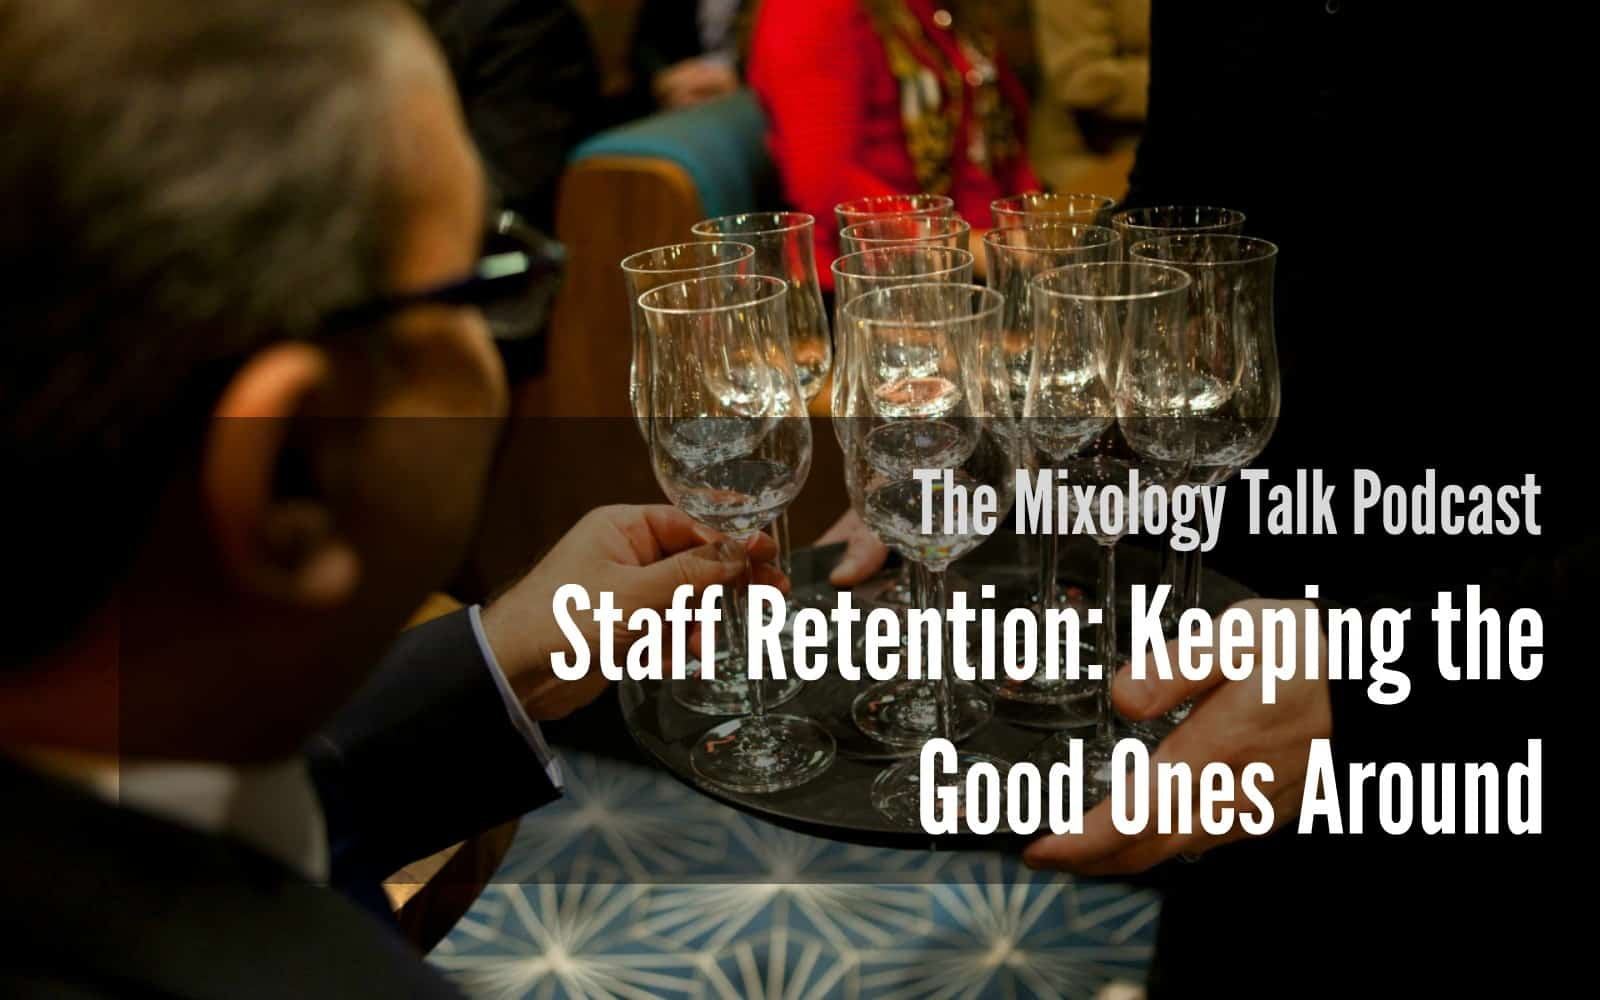 Staff Retention: Keeping the Good Ones Around